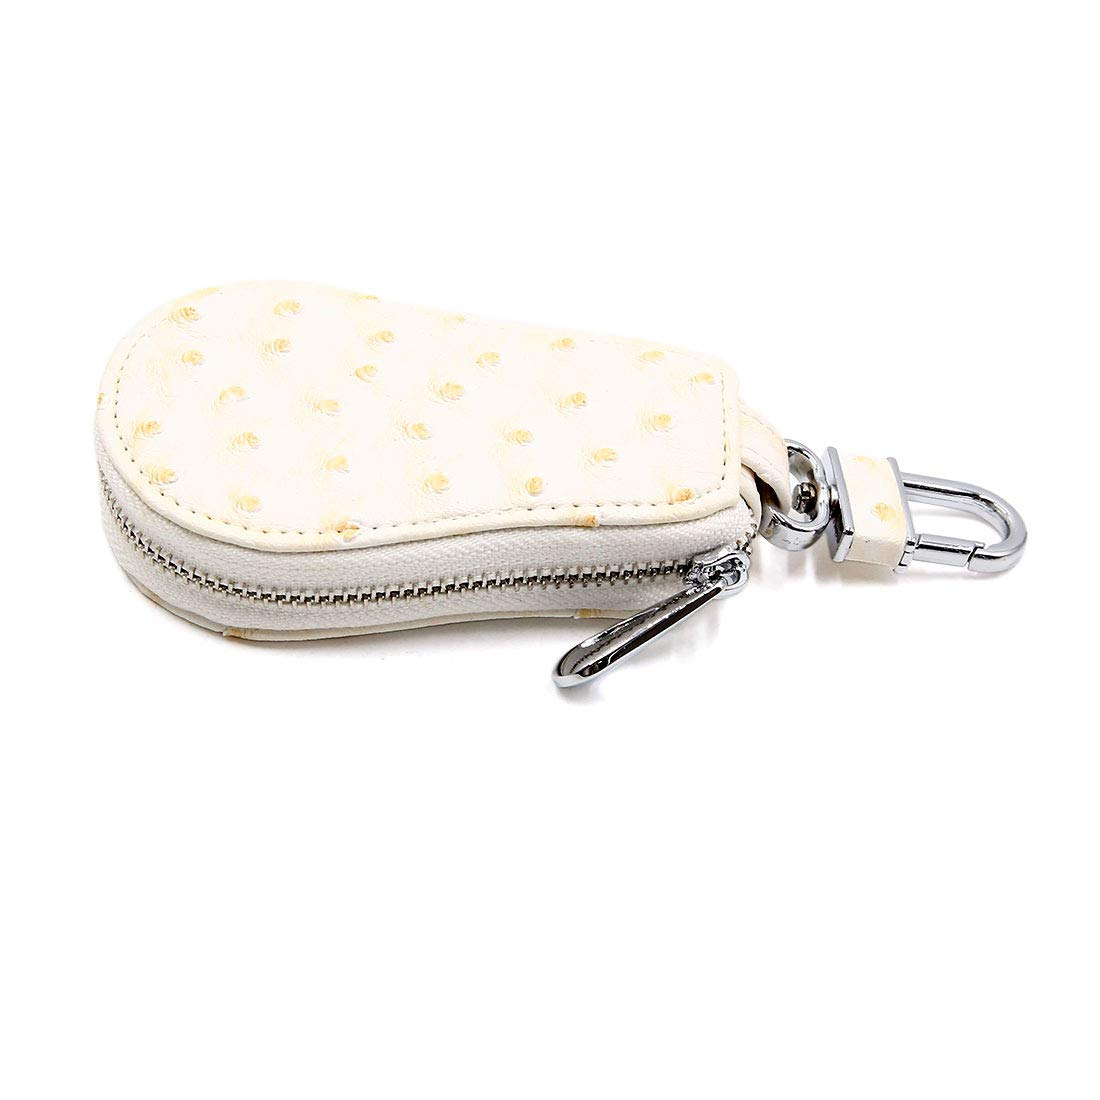 uxcell White Faux Leather Gourd Shaped Key Coin Storage Holder Zipper Bag for Car